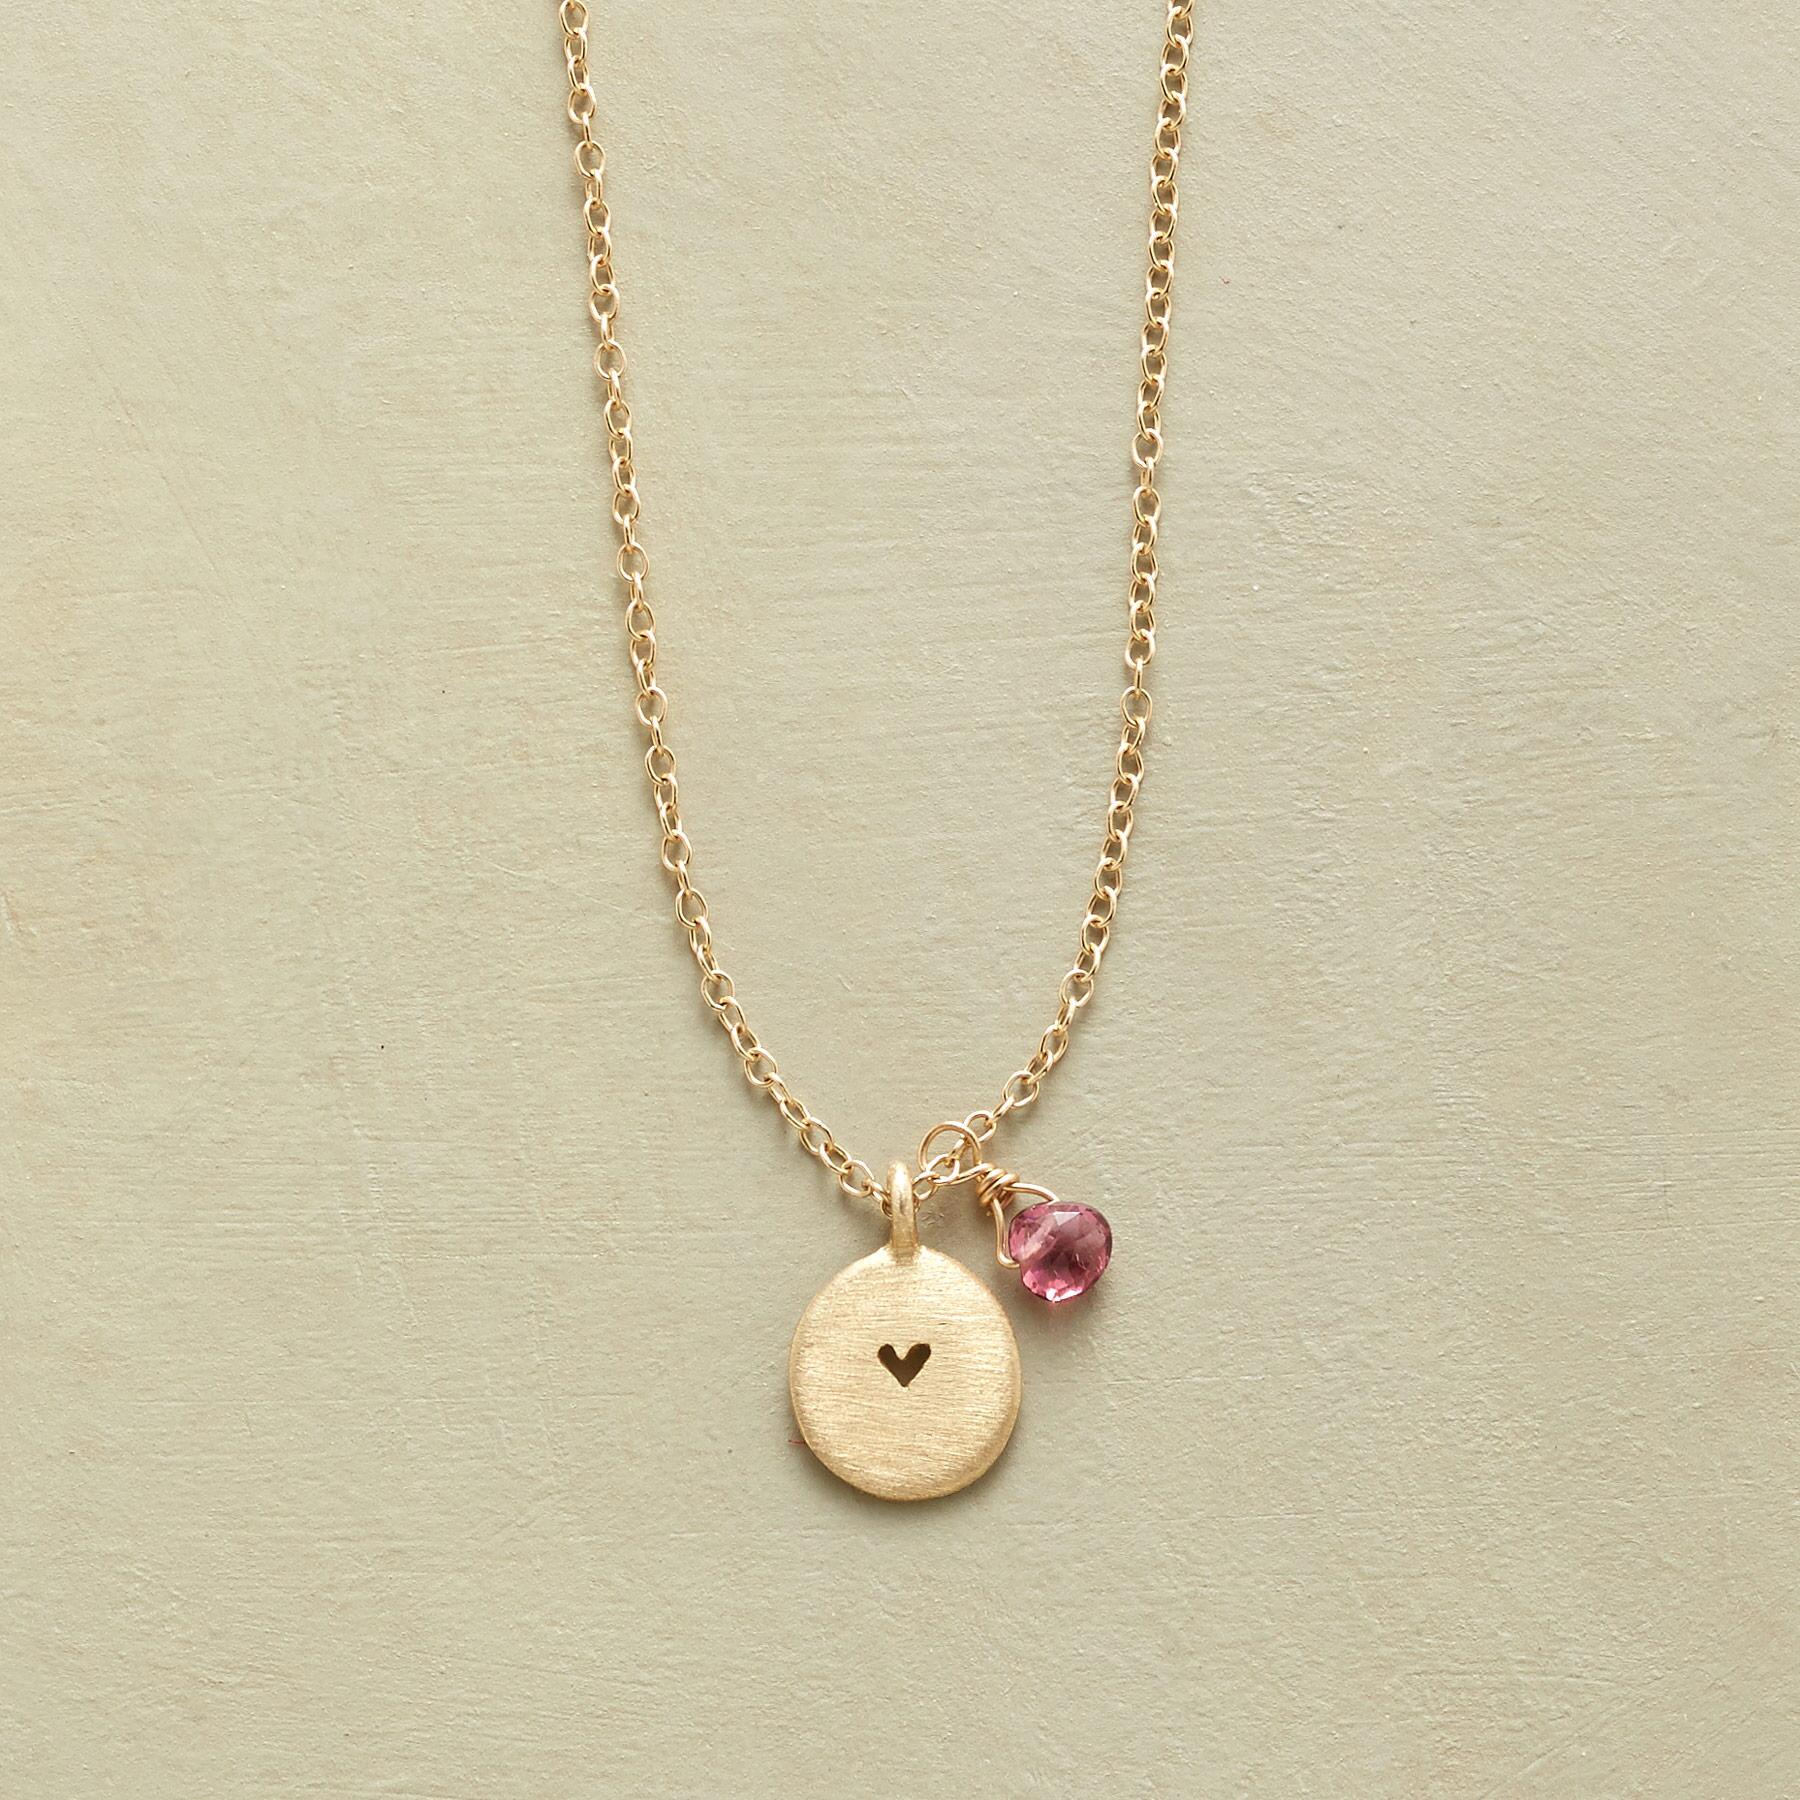 Openhearted Necklace: View 1